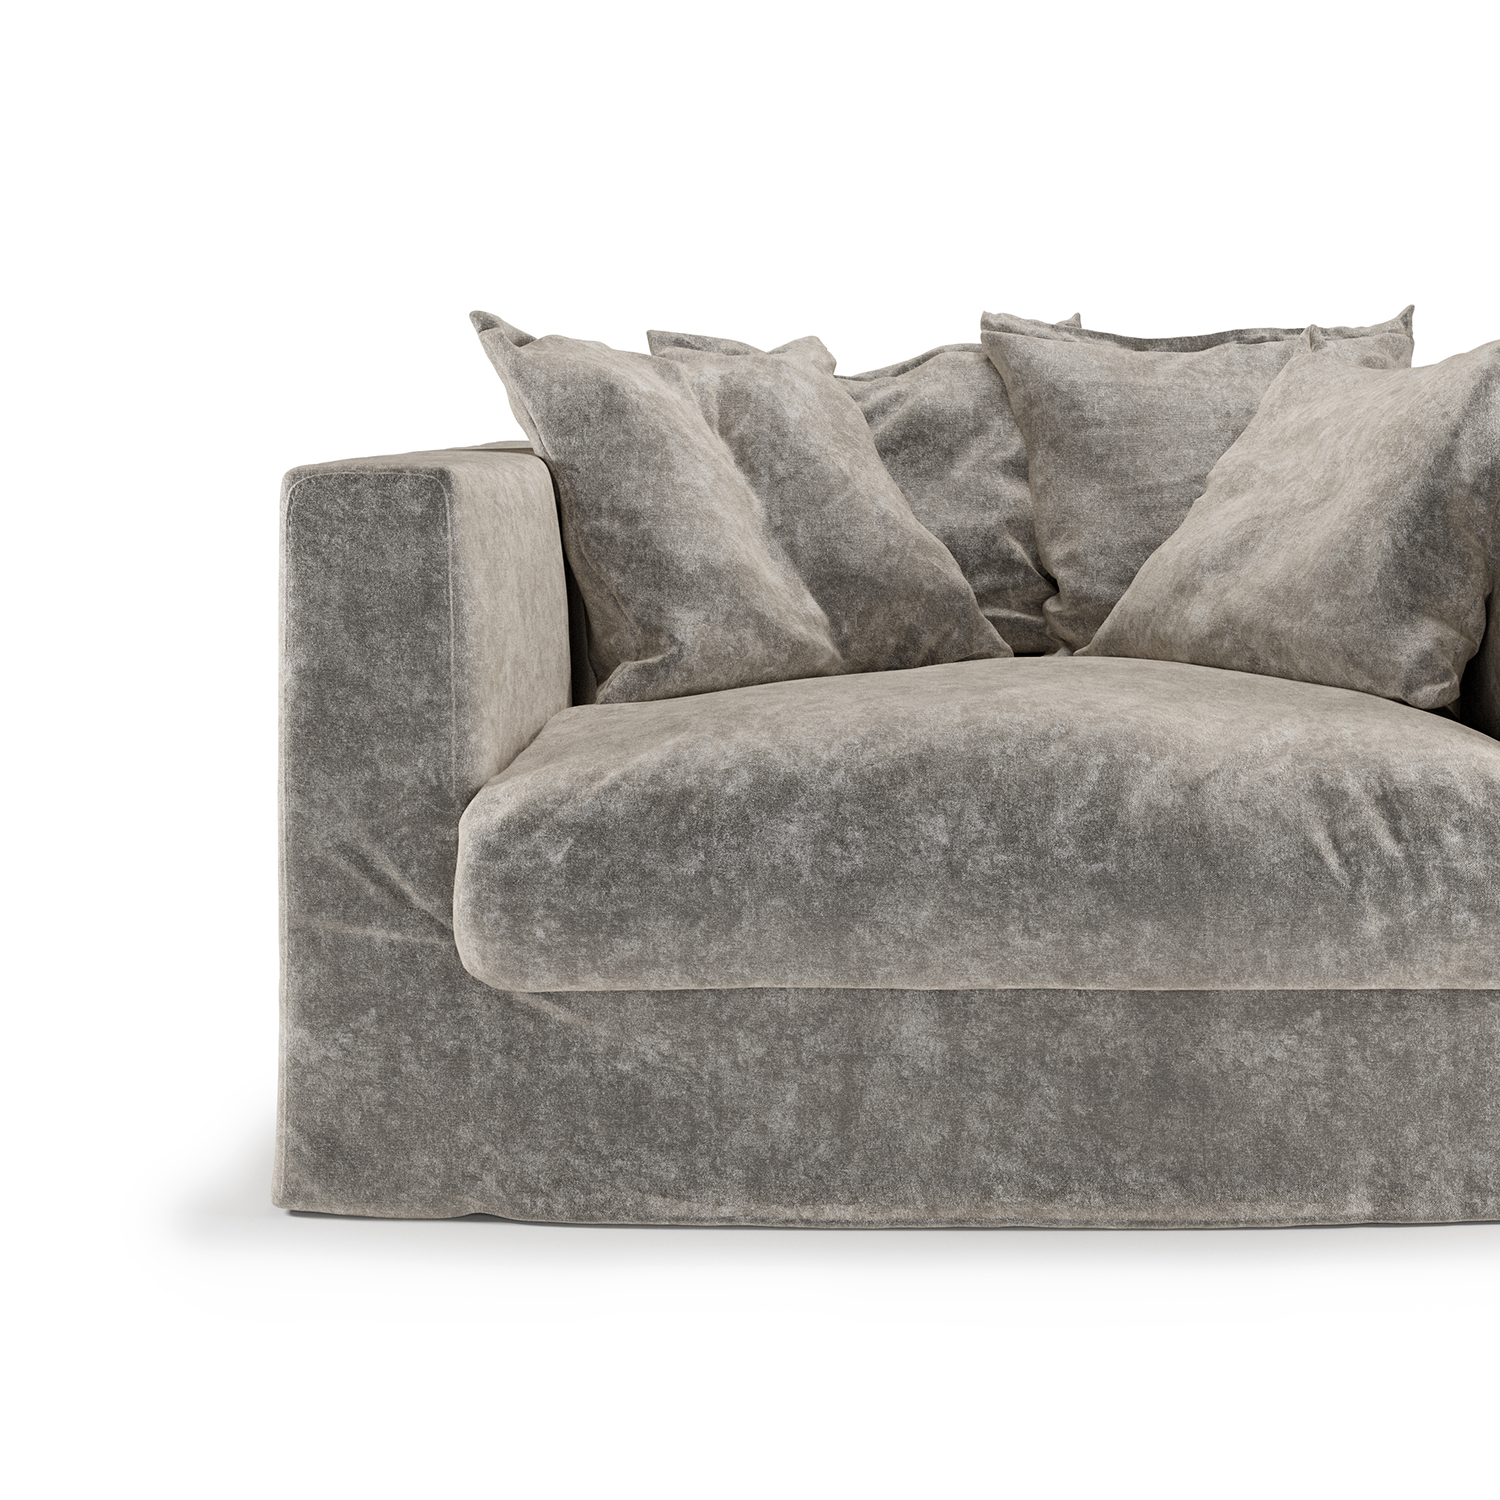 Le Grand Air Loveseat betræk, Concrete